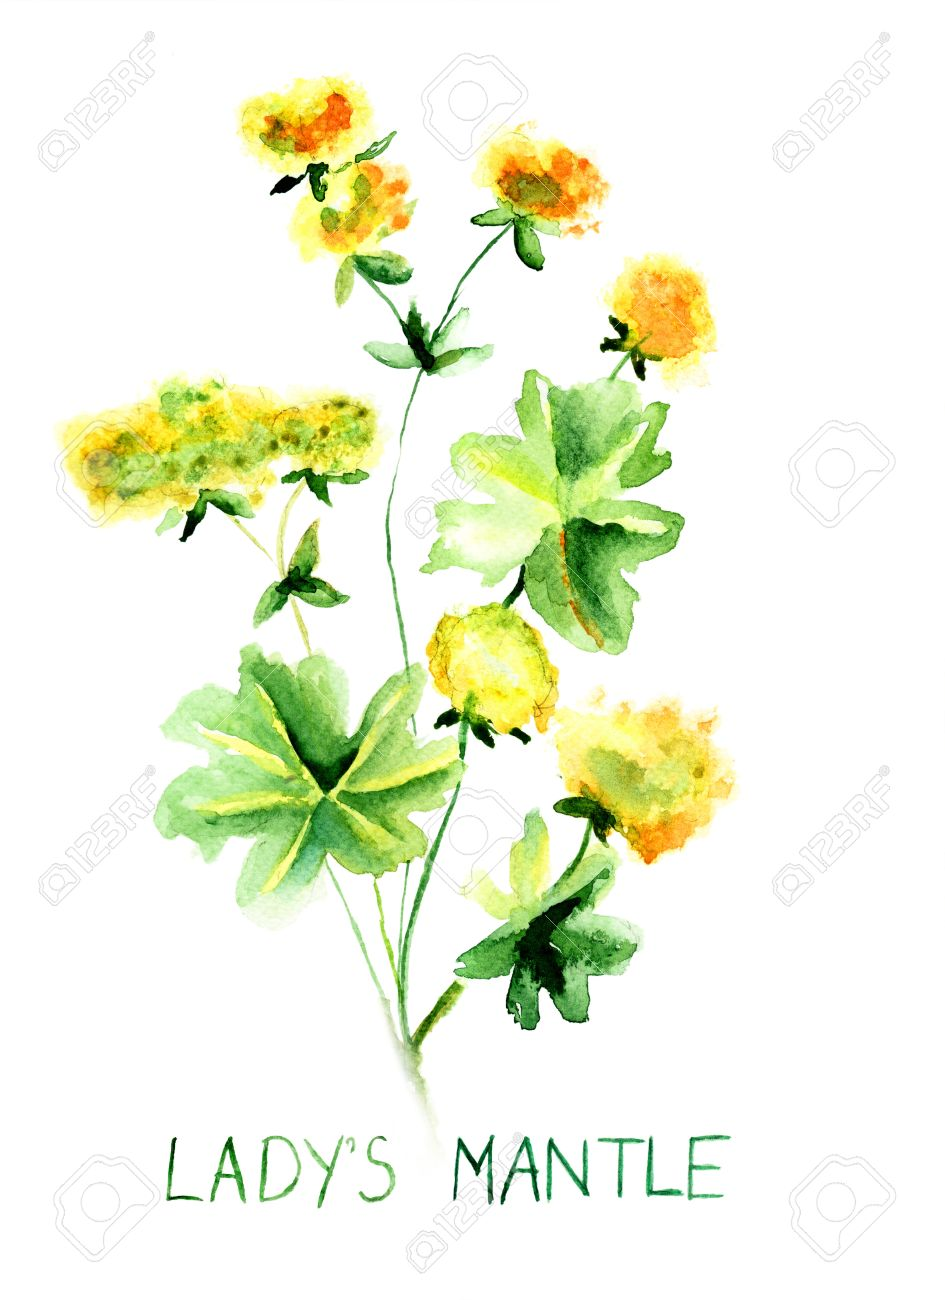 Ladys Mantle Herb, Watercolor Illustration Stock Photo, Picture.